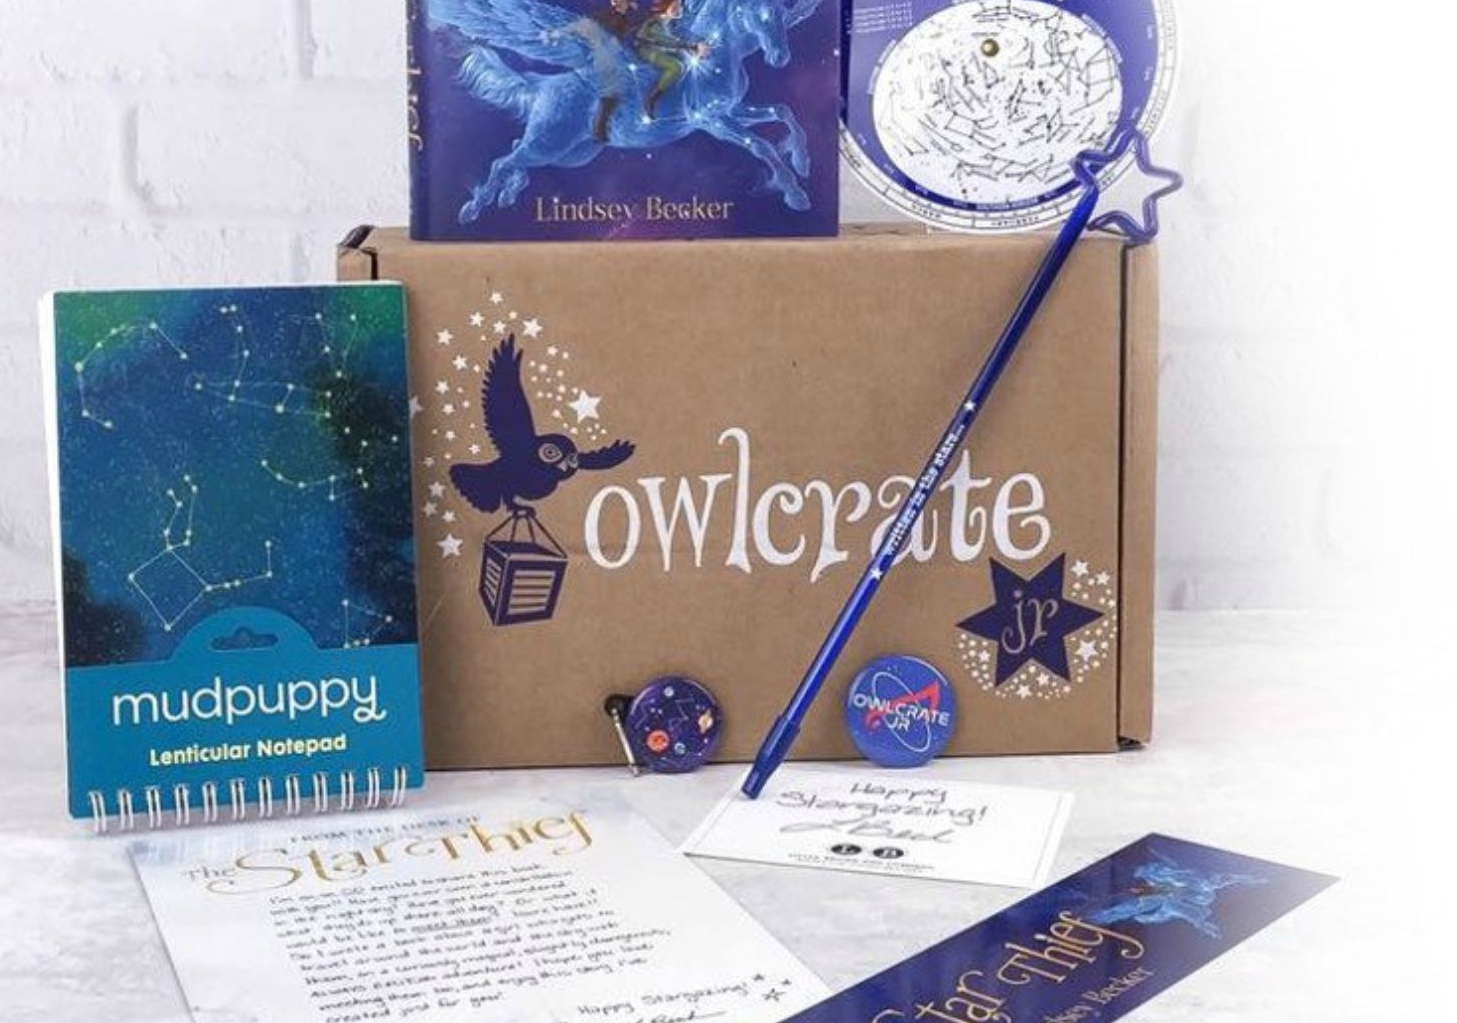 Owl Crate Jr March 2019 Spoilers Coupon Savvy